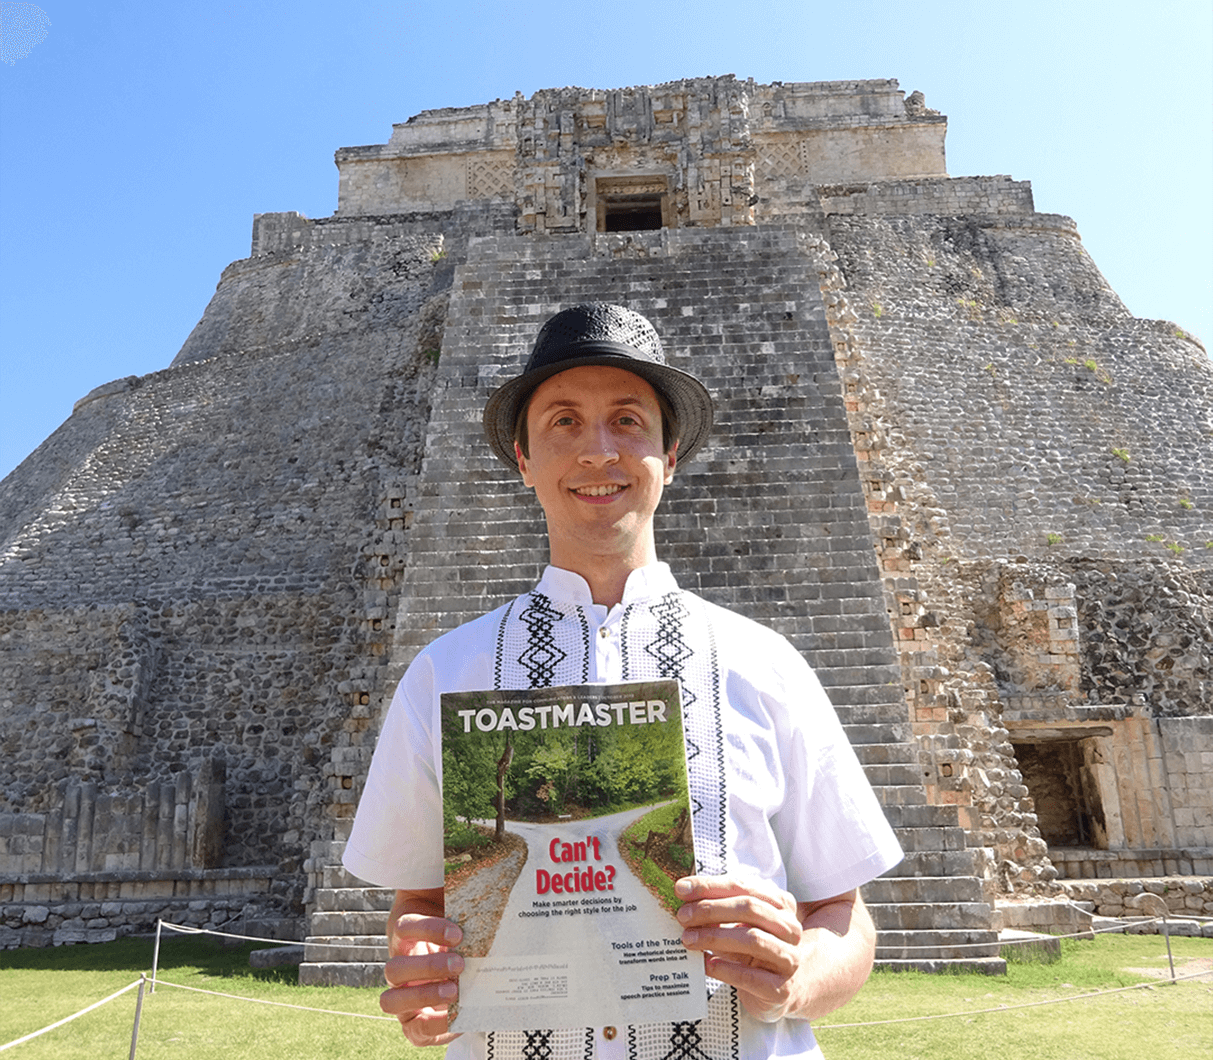 Caleb Werth of South St. Paul, Minnesota, stands in front of the Pyramid of the Magician—the tallest and most distinctive Mayan structure in Uxmal, Mexico, an ancient city on the Yucatan Peninsula.